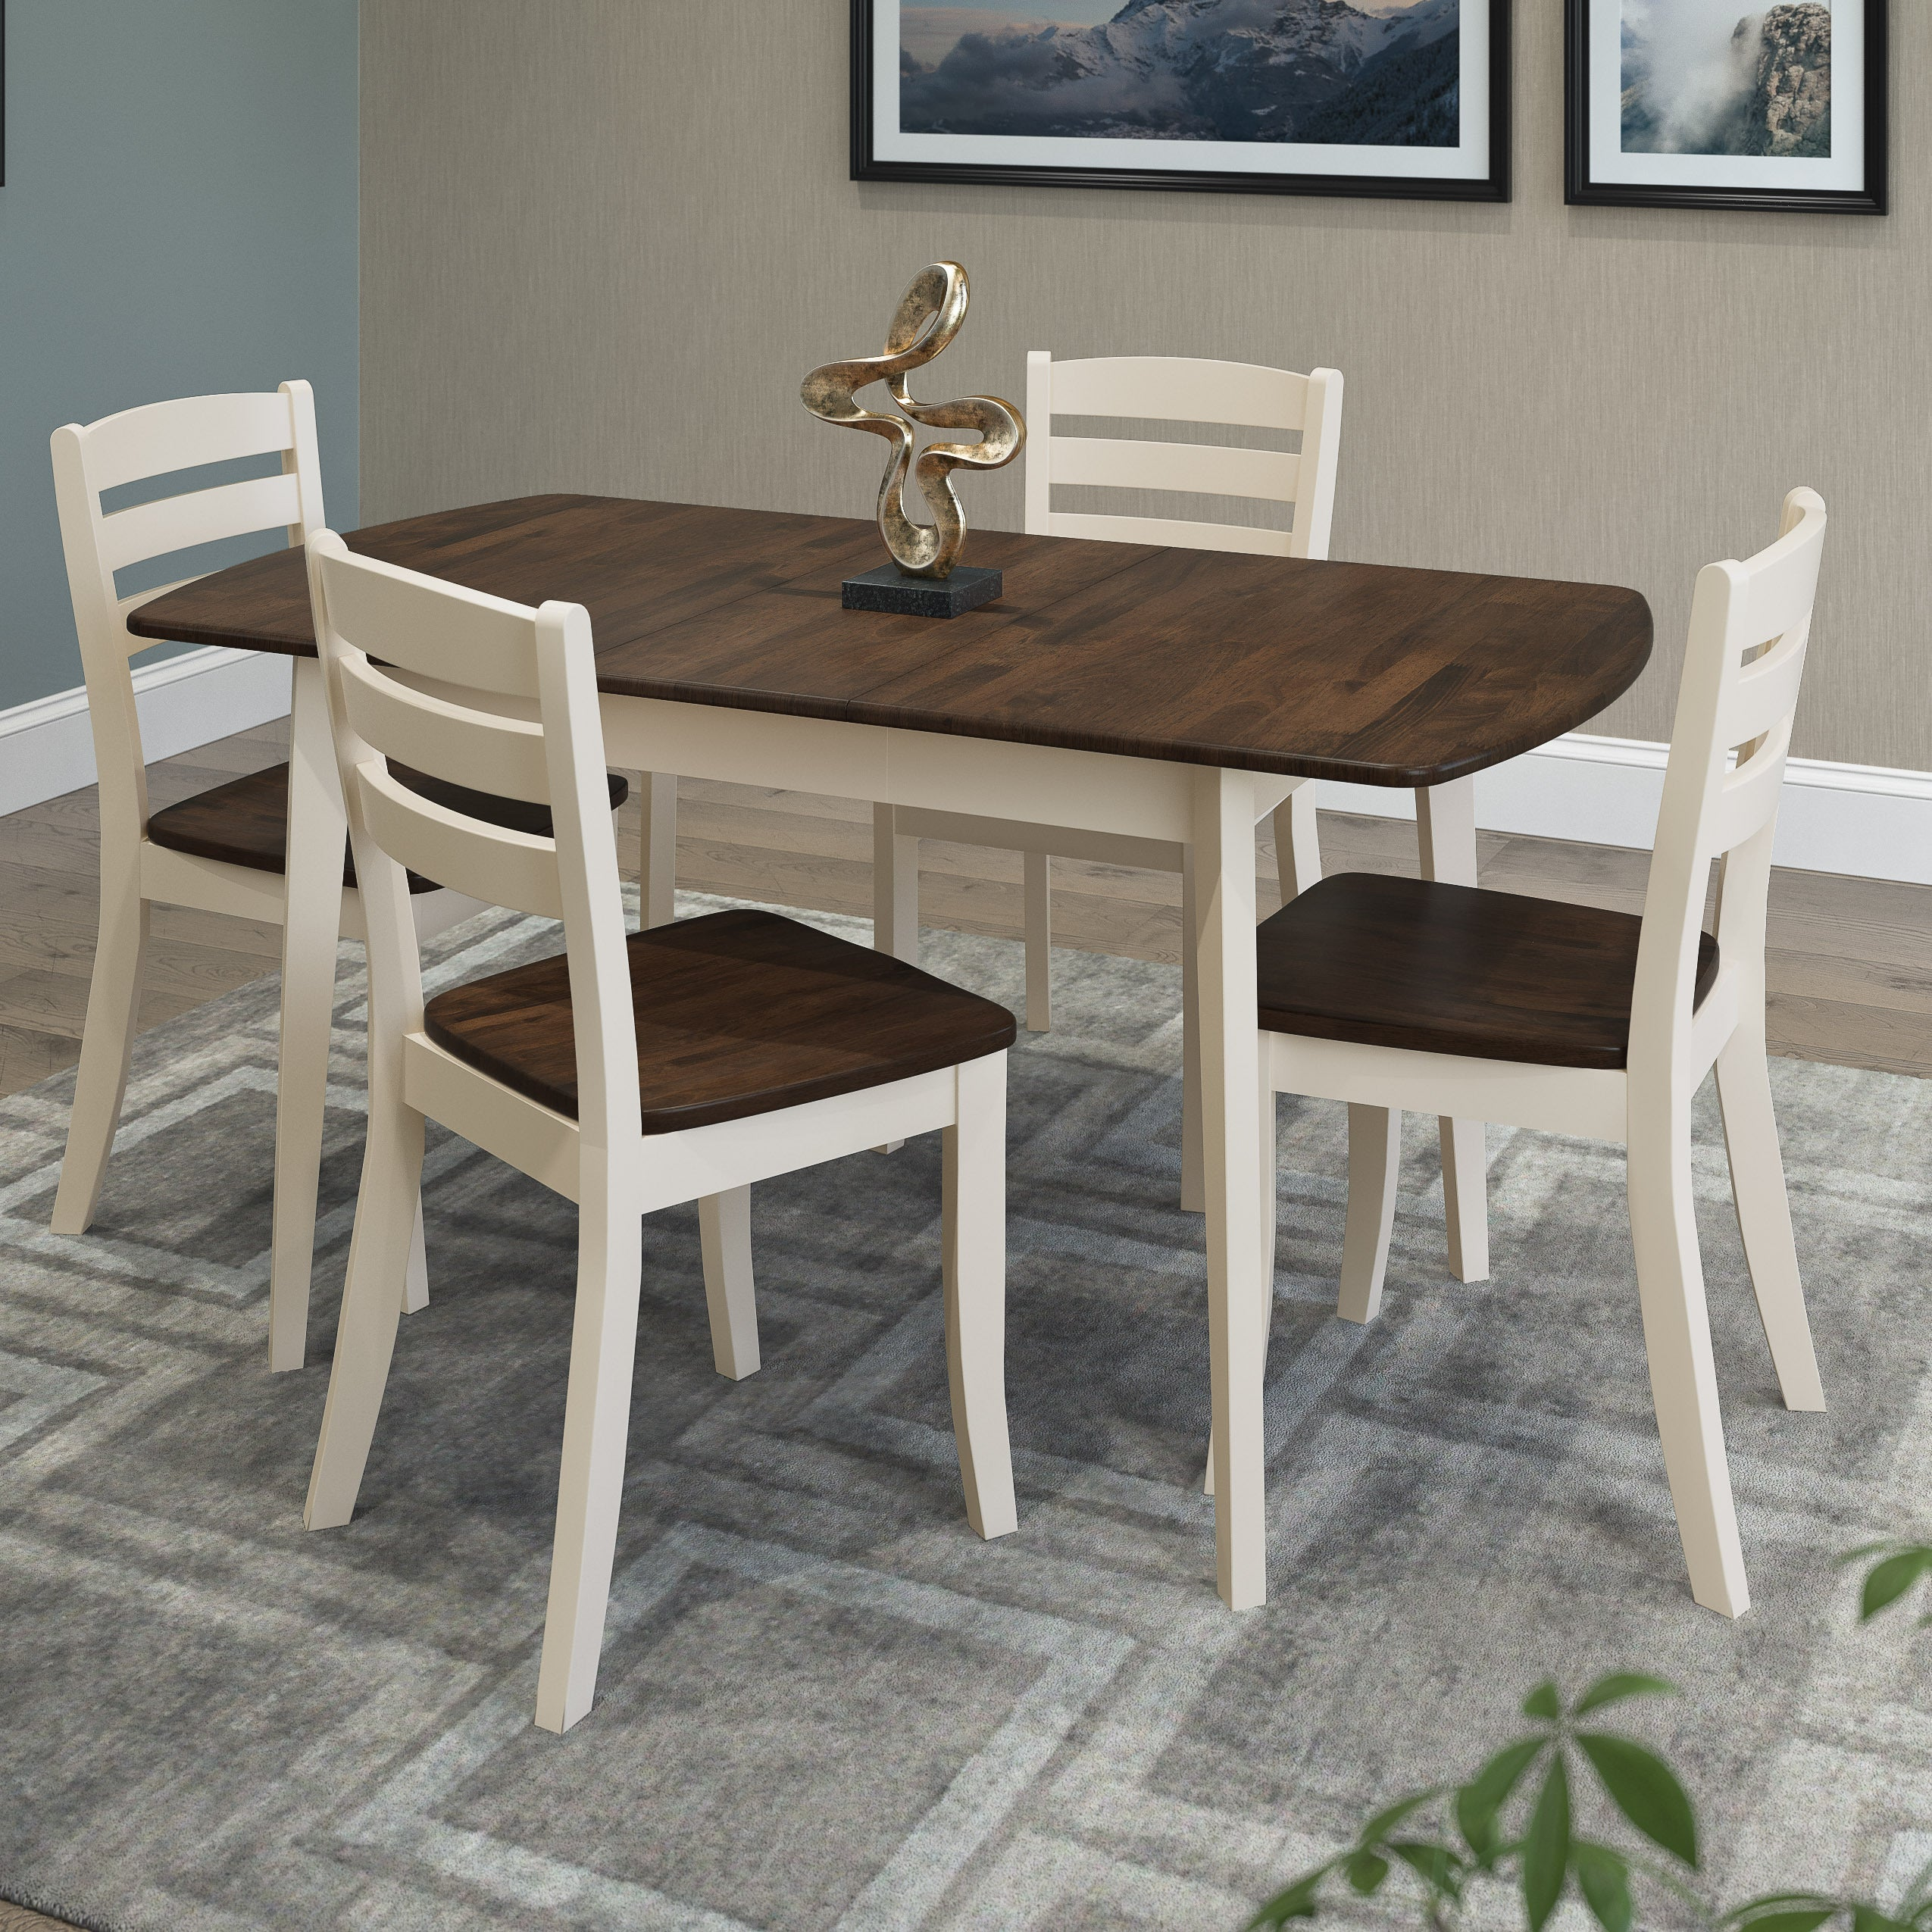 CorLiving Dillon Dark Brown and Cream Rubberwood 5-piece Dining Set (Dark Brown and Cream)